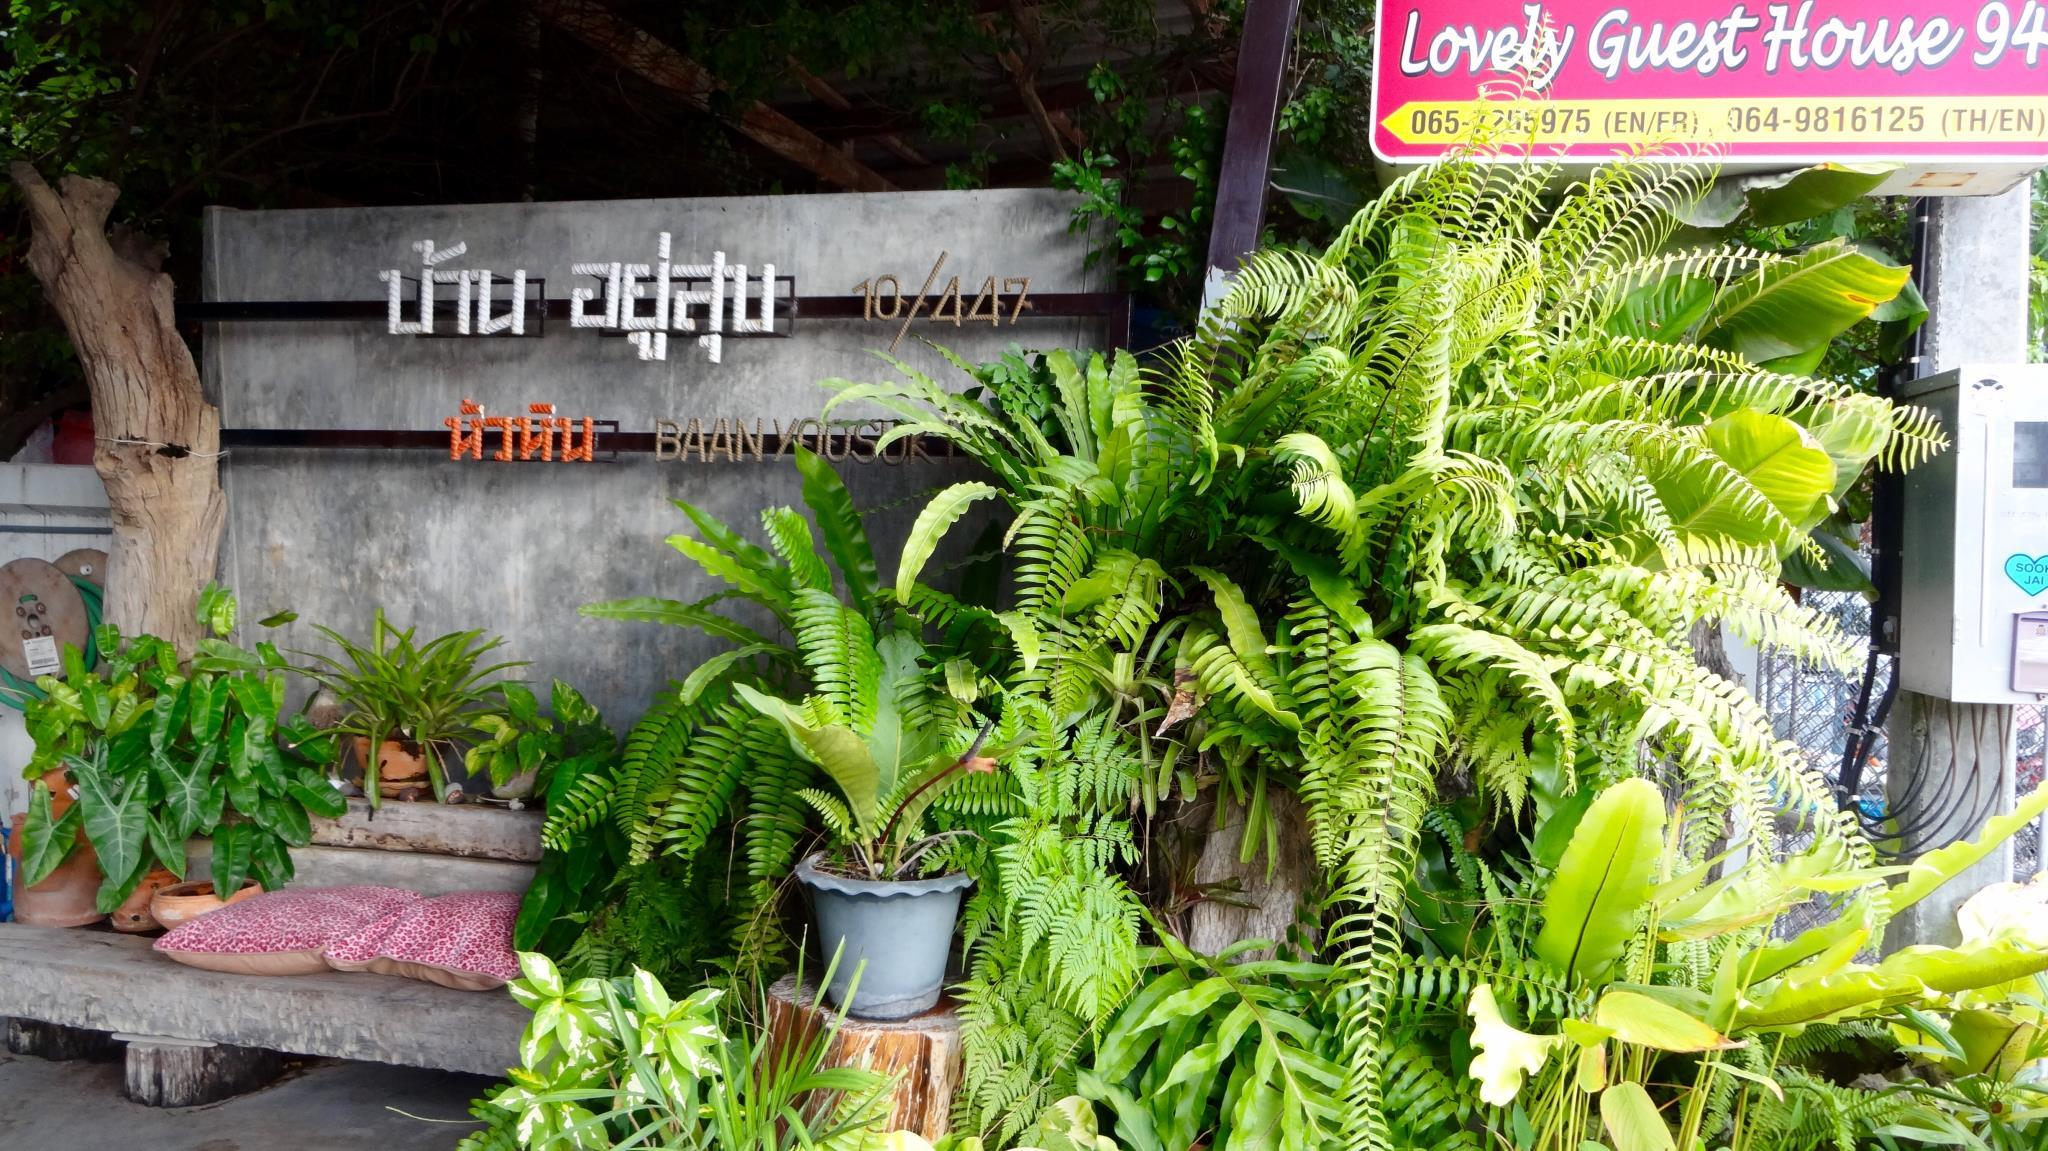 Lovely Guesthouse 94